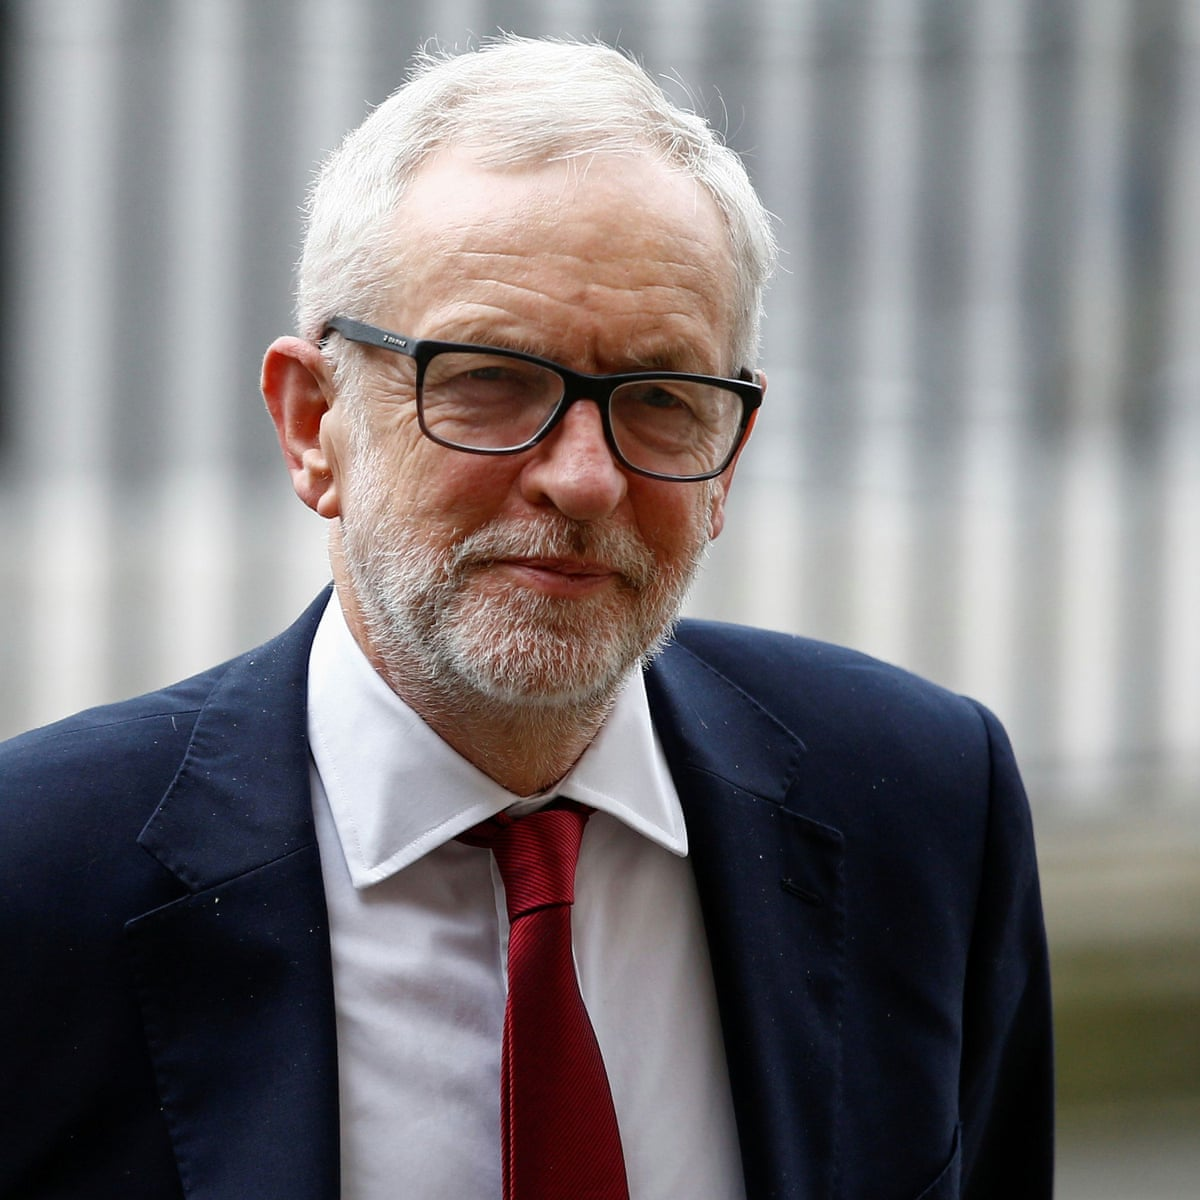 Labour reinstates Jeremy Corbyn after suspension over antisemitism ...